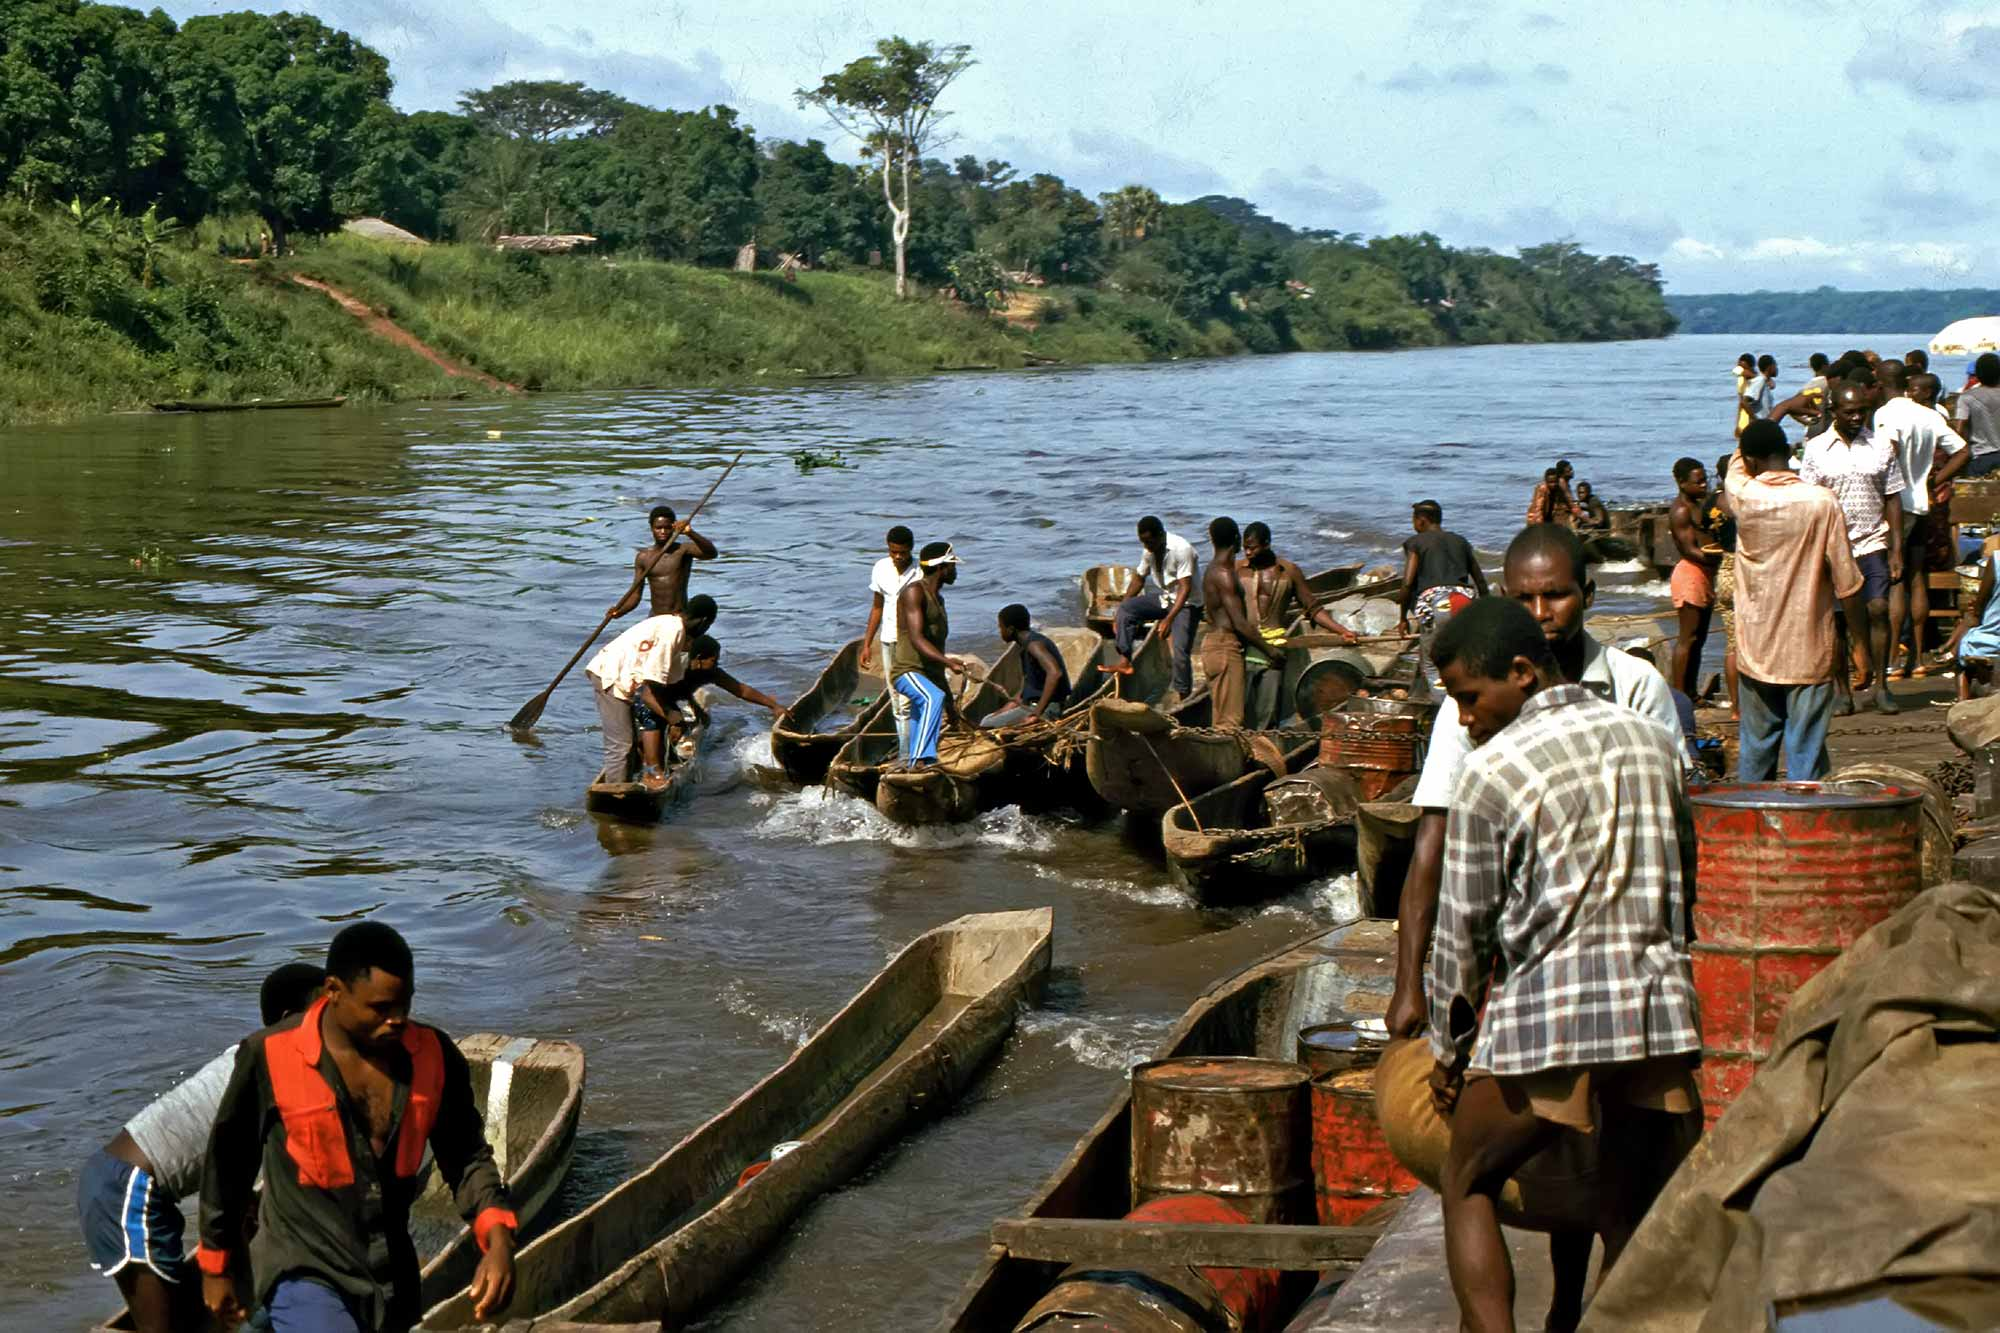 boat-ride-on-the-congo-river-zaire-africa